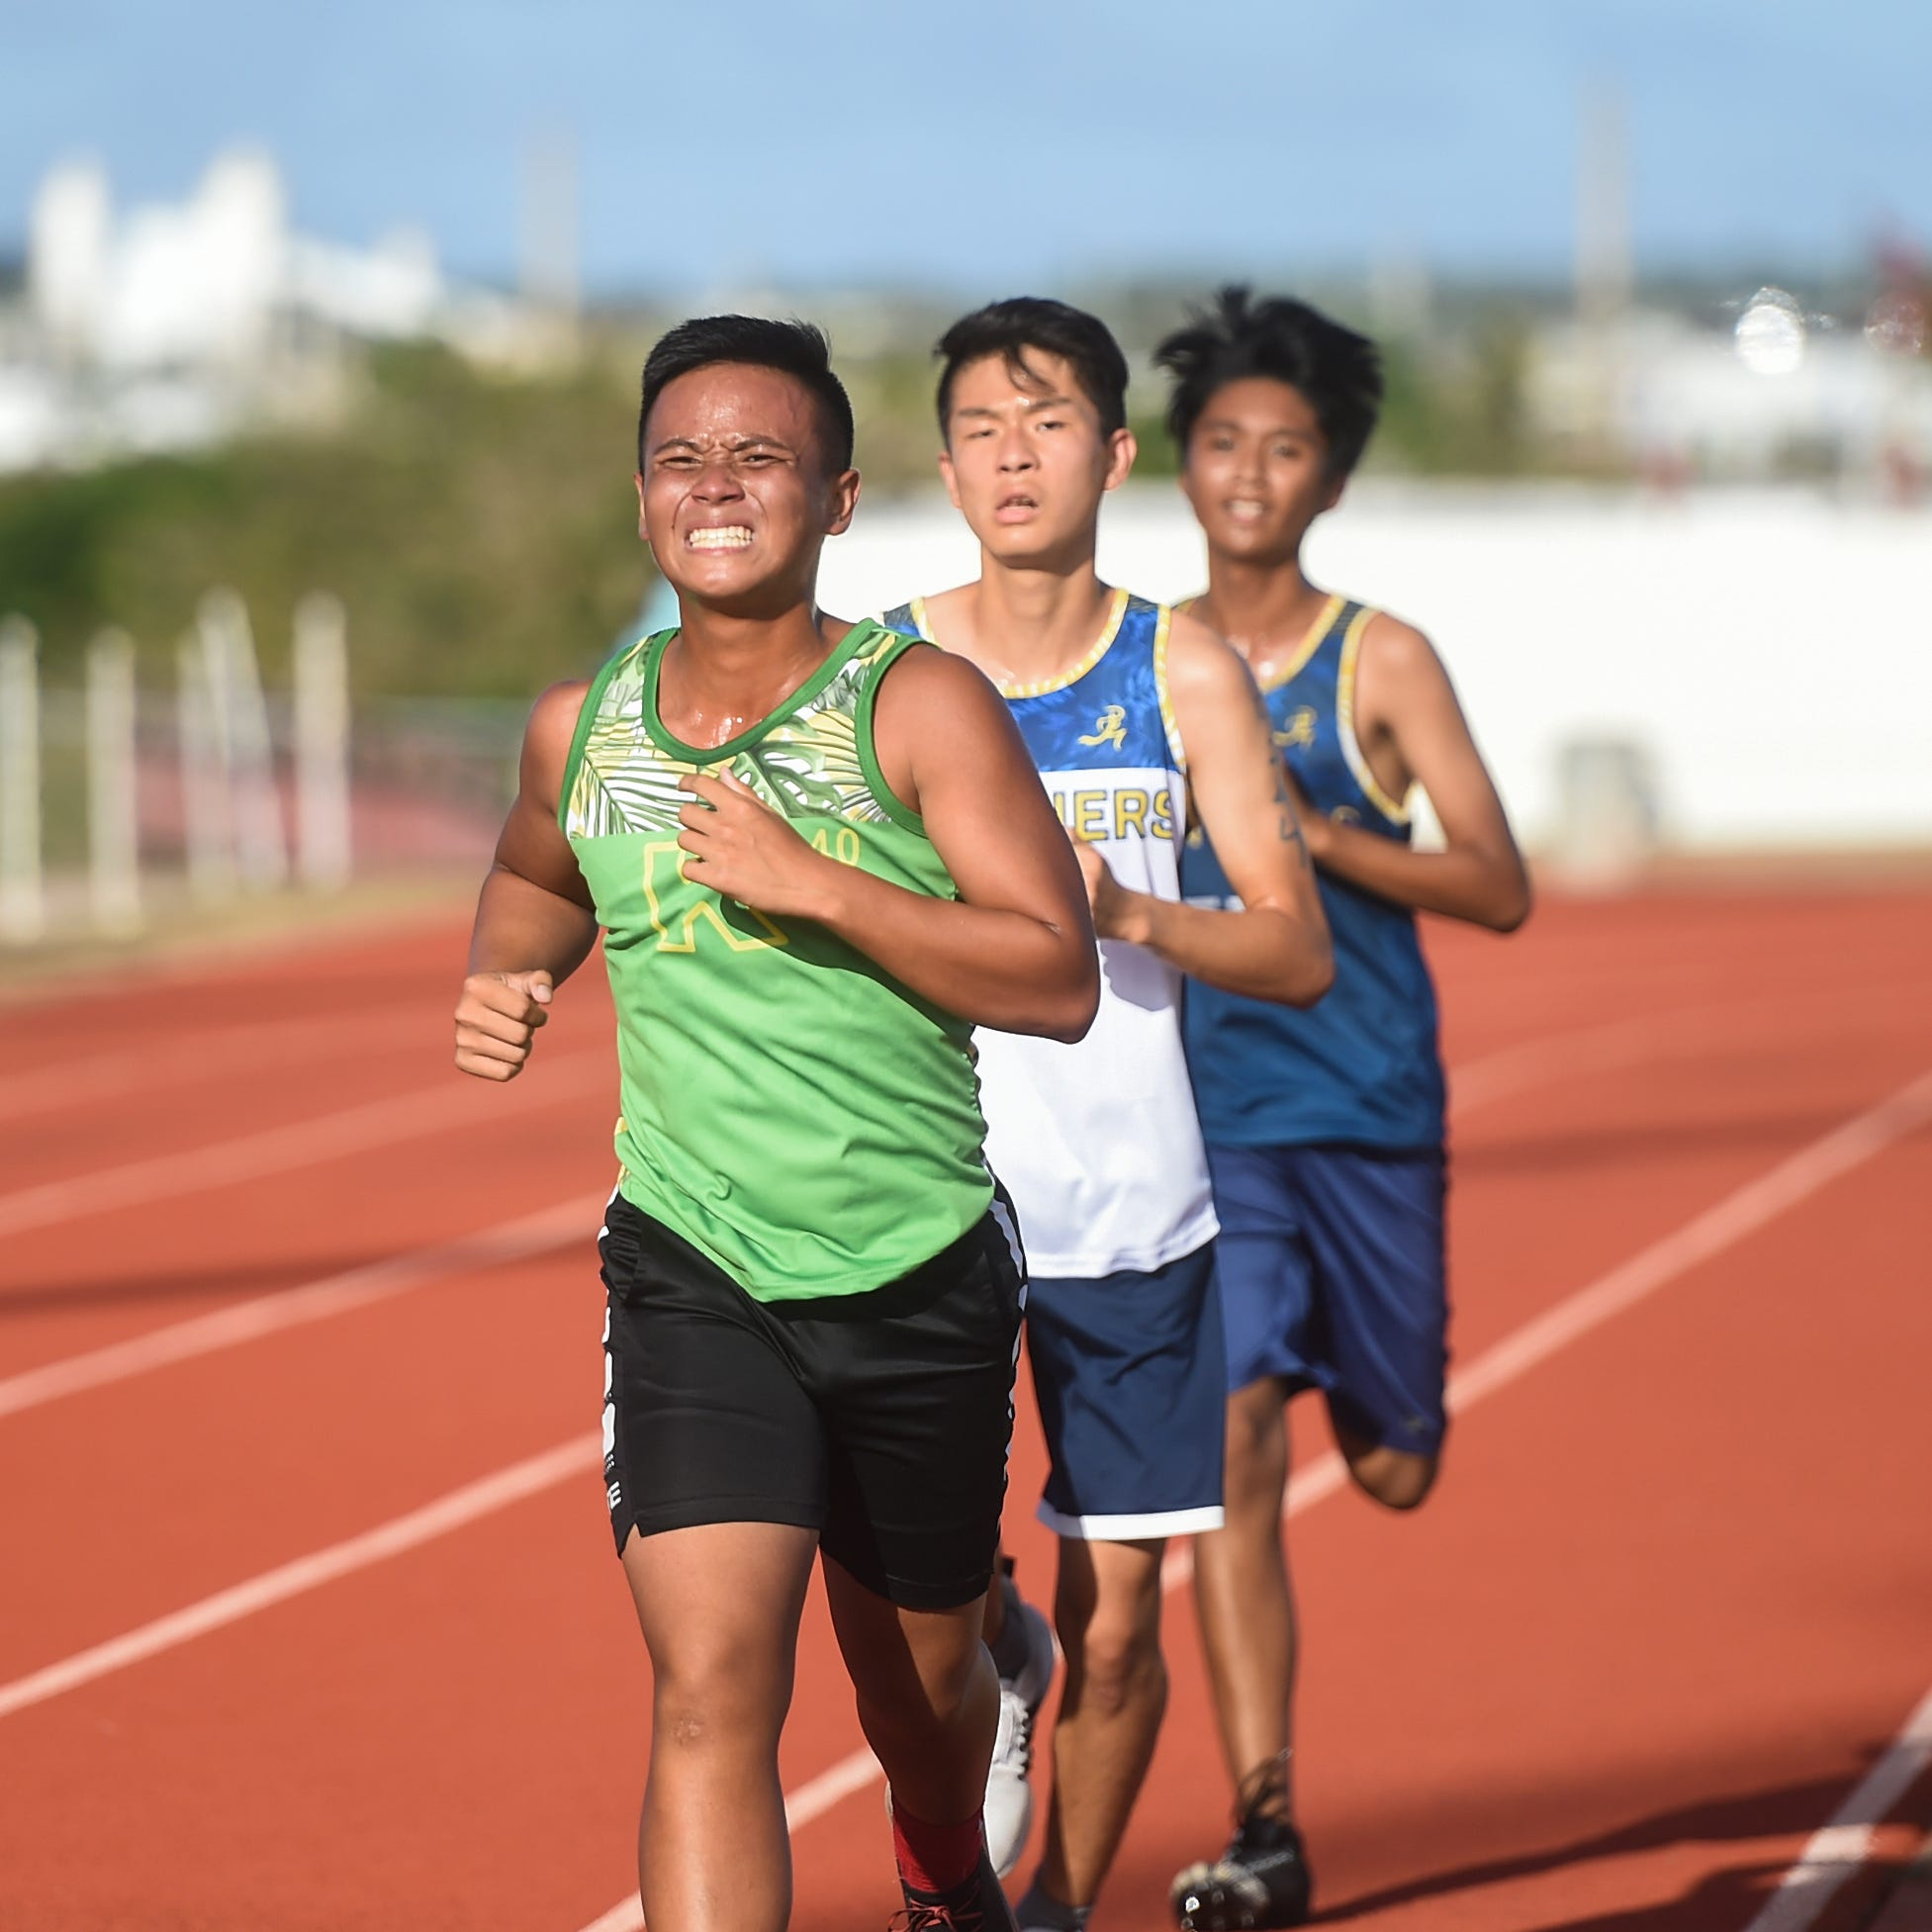 'Take it back and make it right': Guam DOE to take control of interscholastic sports